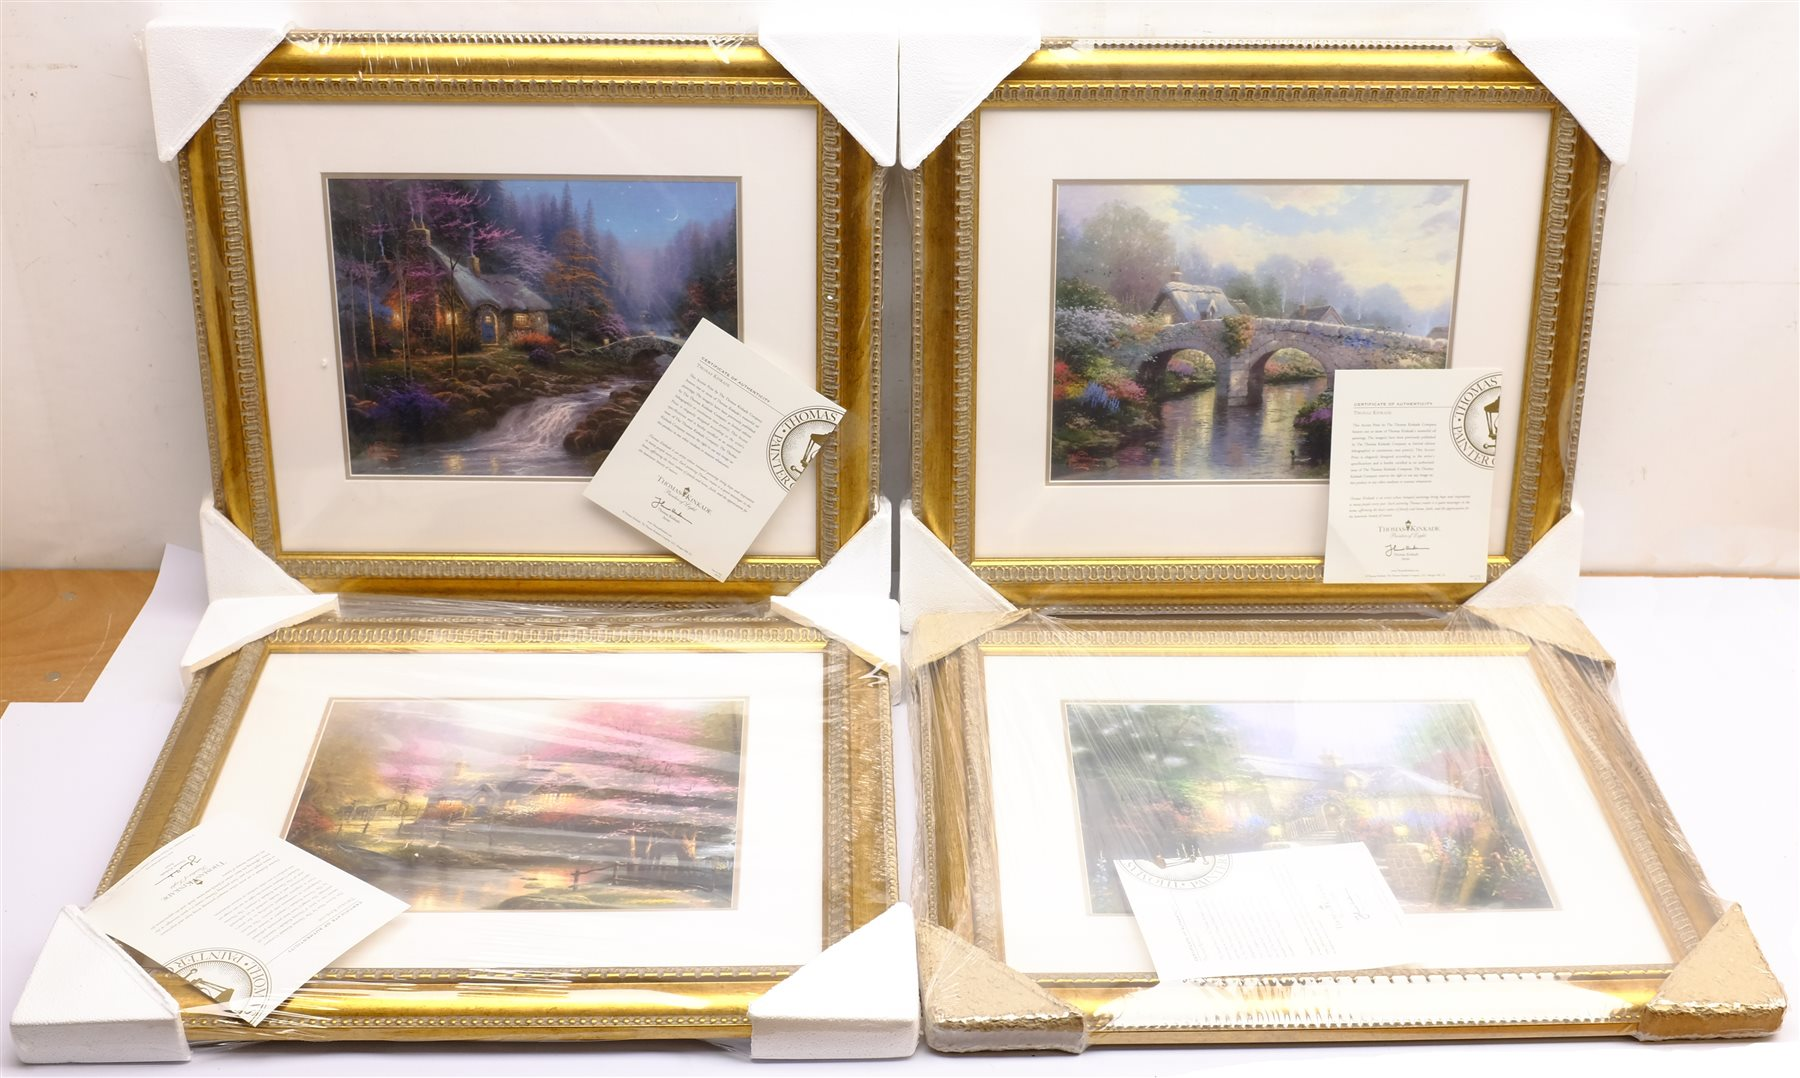 After Thomas Kinkade (American 1958-2012): Cottage and River scenes, set of six colour prints 28cm x - Image 2 of 4